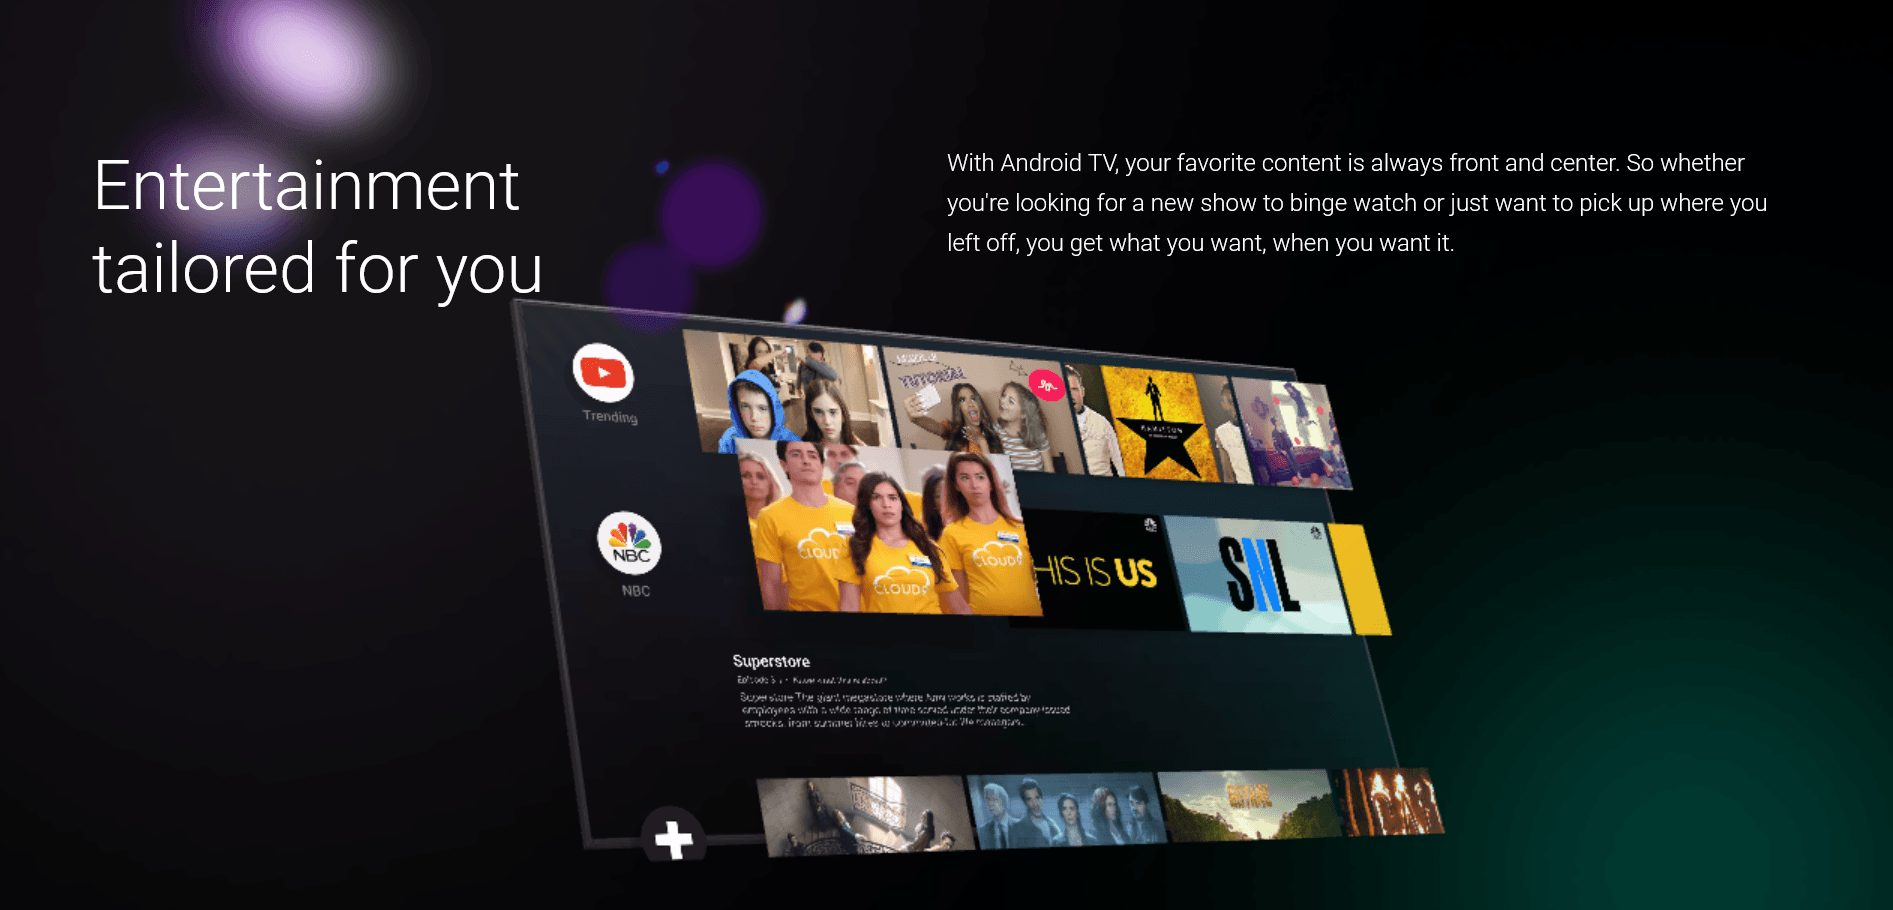 Redesigned Play Store on Android TVs